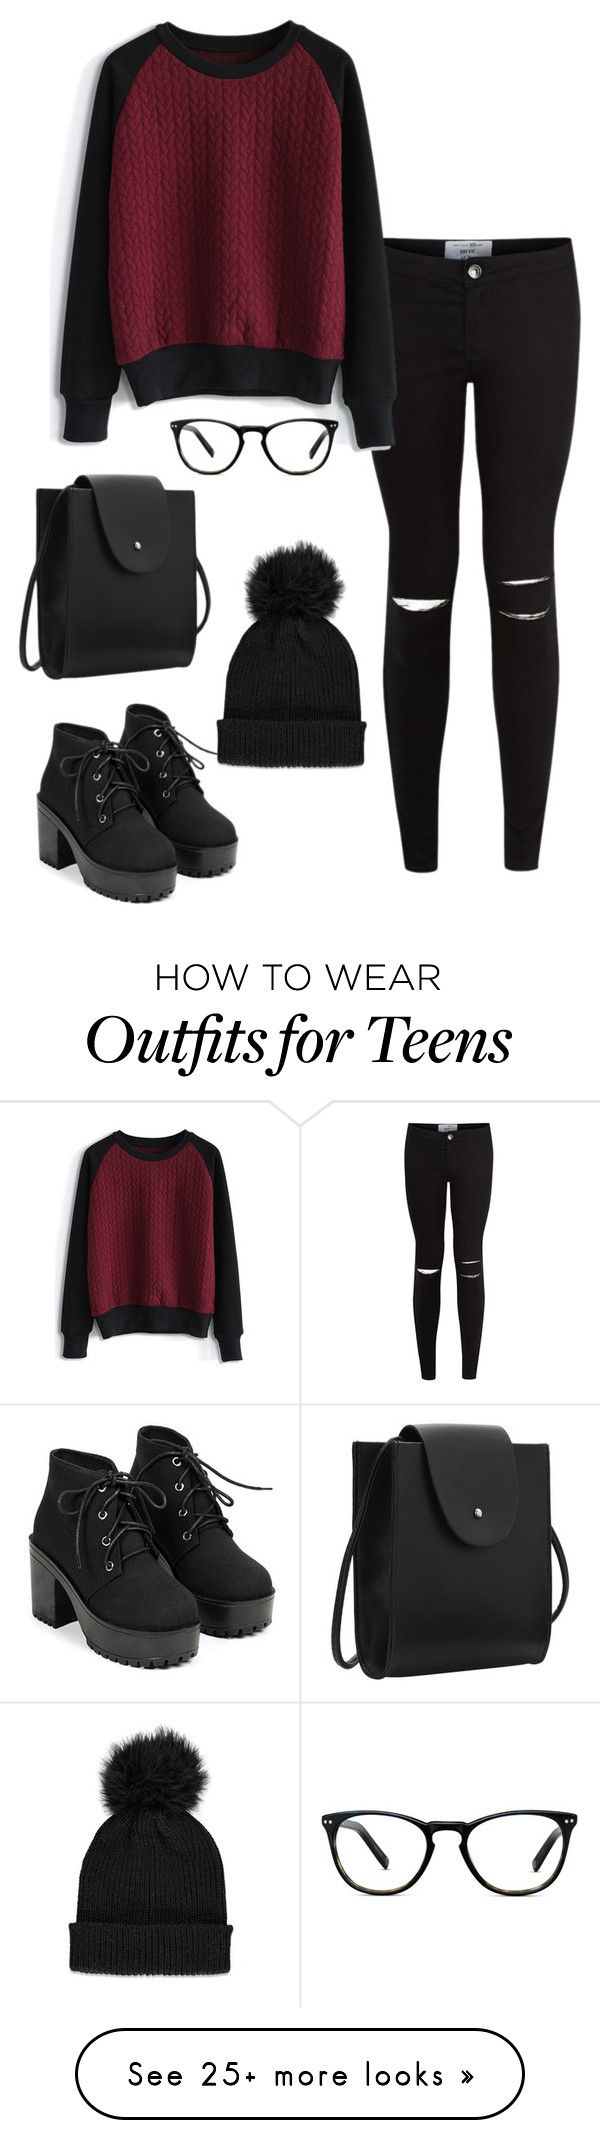 Winter Clothes Maroon And Black Super Cute